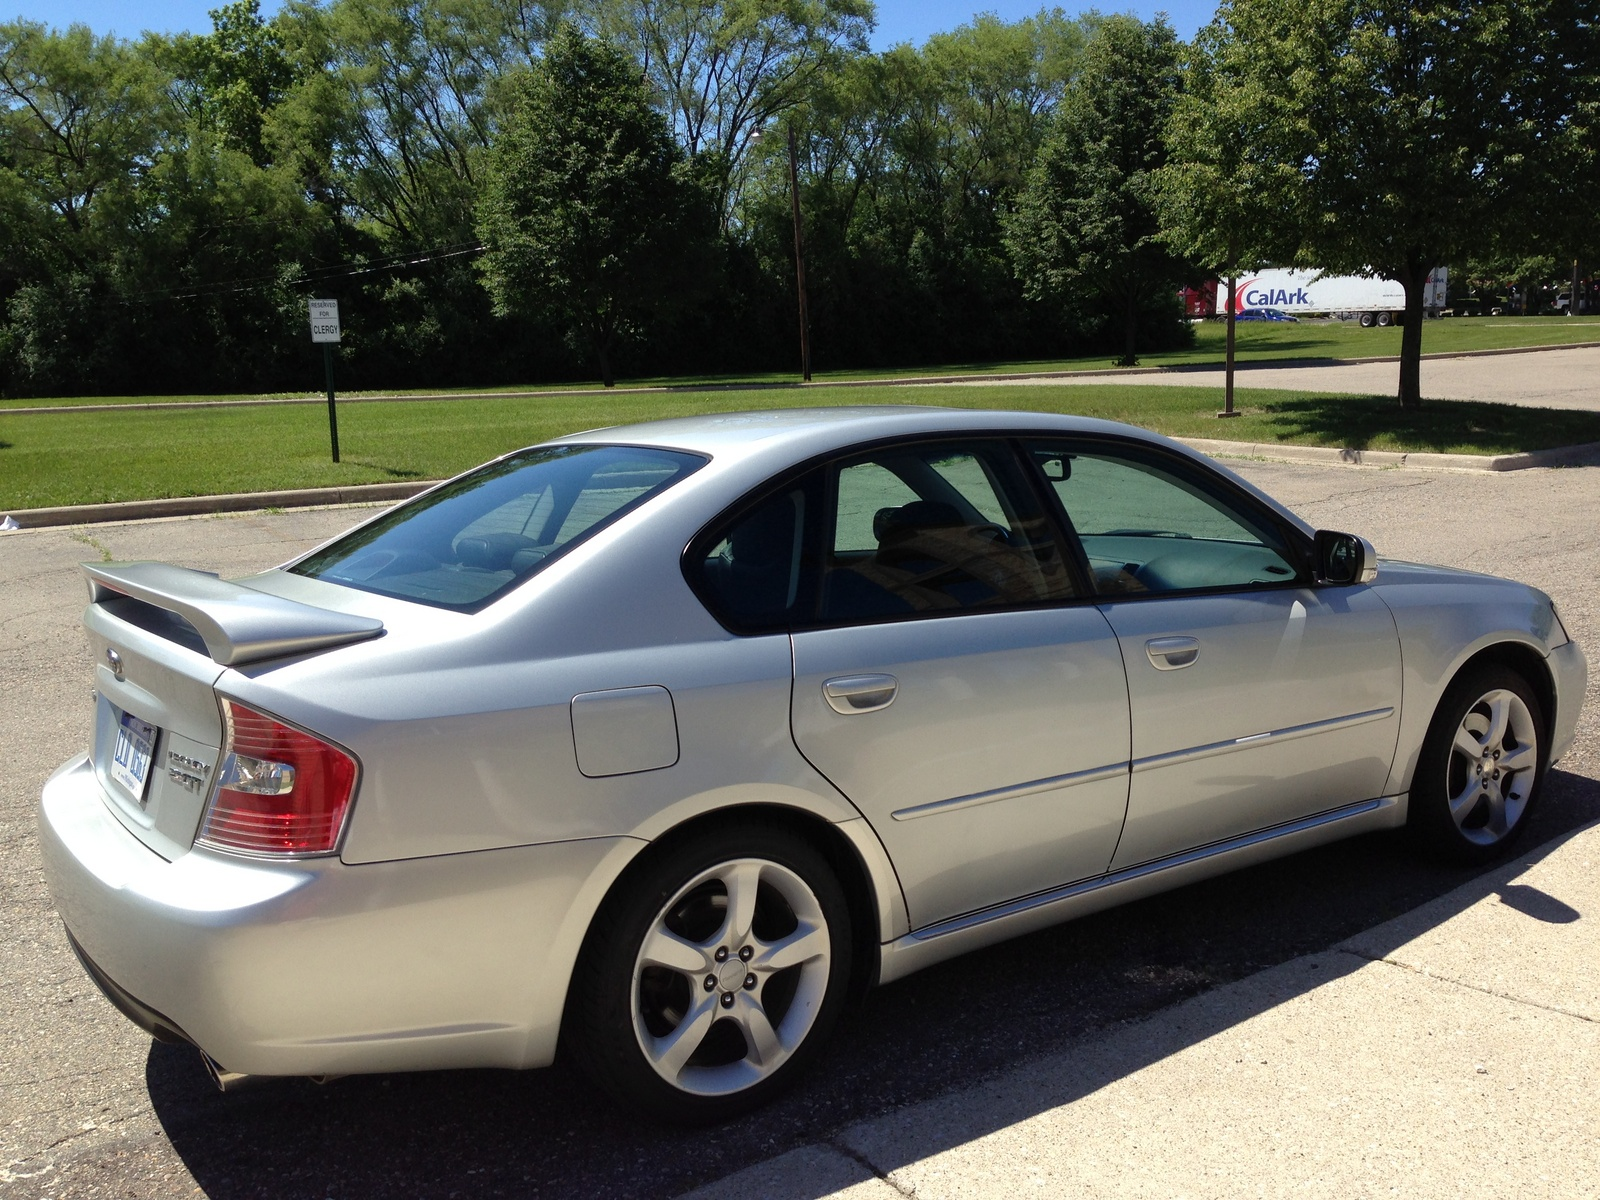 2006_subaru_legacy_2_5_gt_limited pic 2728535949703353222 1997 subaru legacy 2 5 gt related infomation,specifications 2001 Subaru Legacy GT Limited at gsmx.co